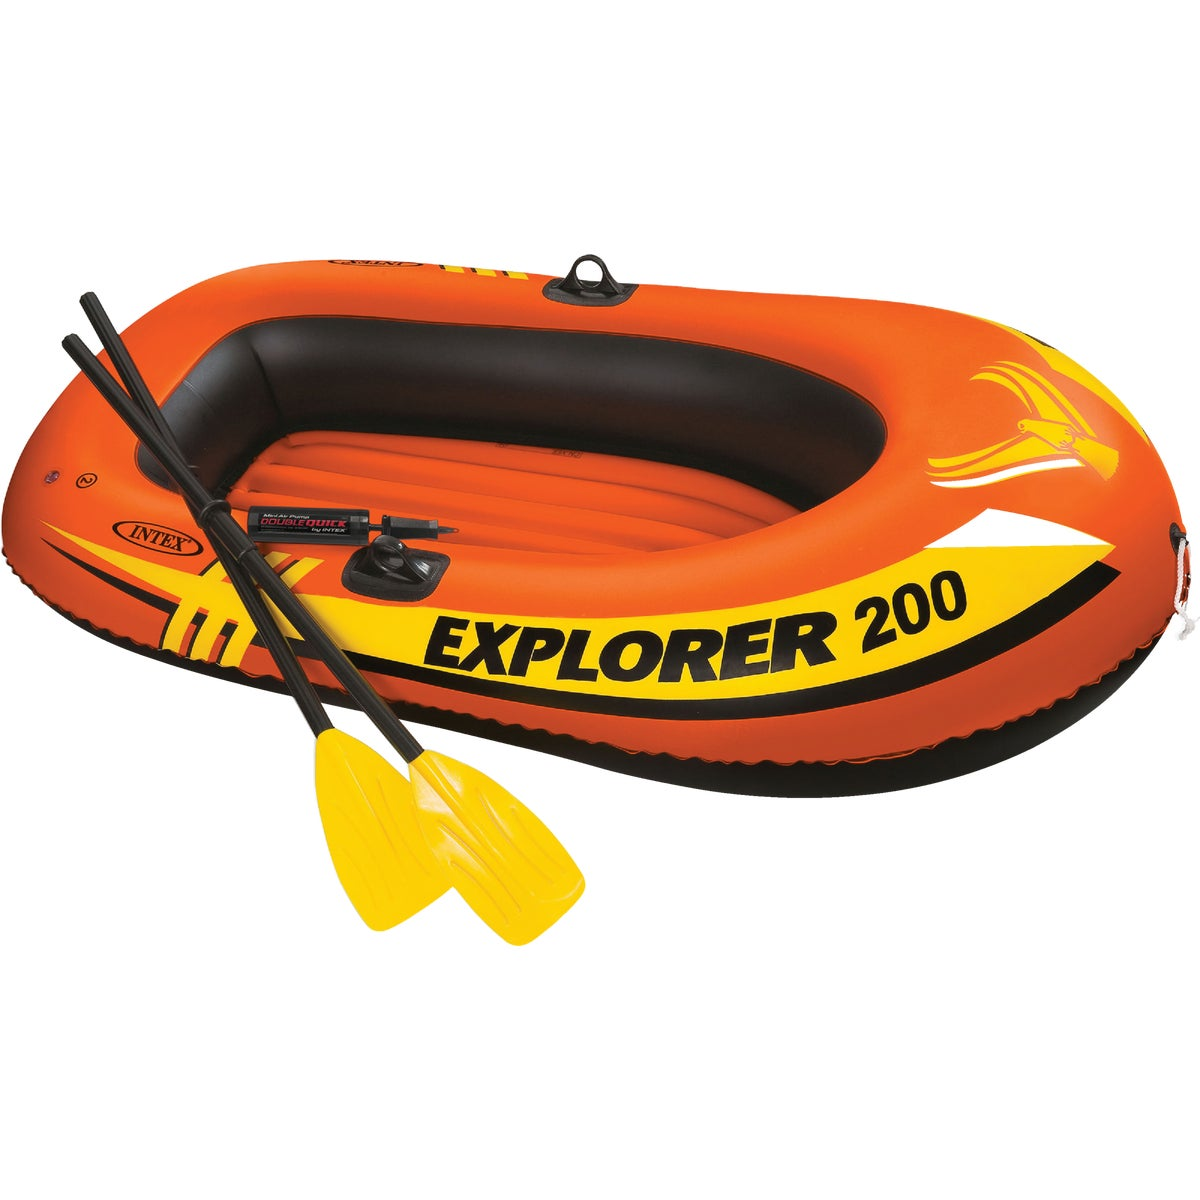 2-PERSON EXPLORER BOAT